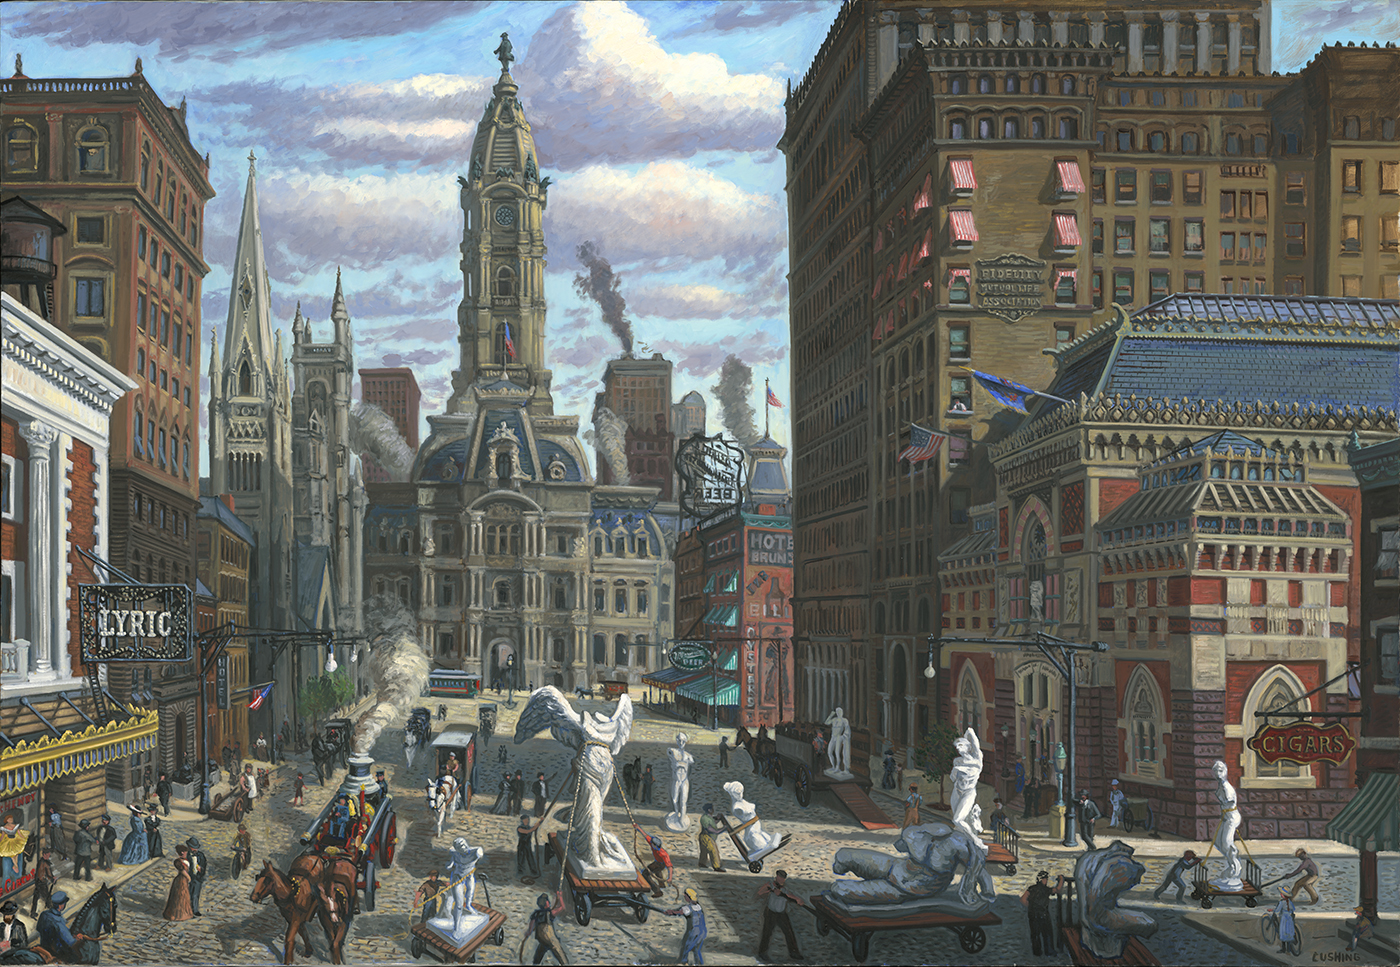 """North Broad Street, Philadelphia, Circa 1905"" A recently completed large painting (fancifully) depicting the delivery of the antique cast collection to The Pennsylvania Academy or the Fine Arts, circa 1905."